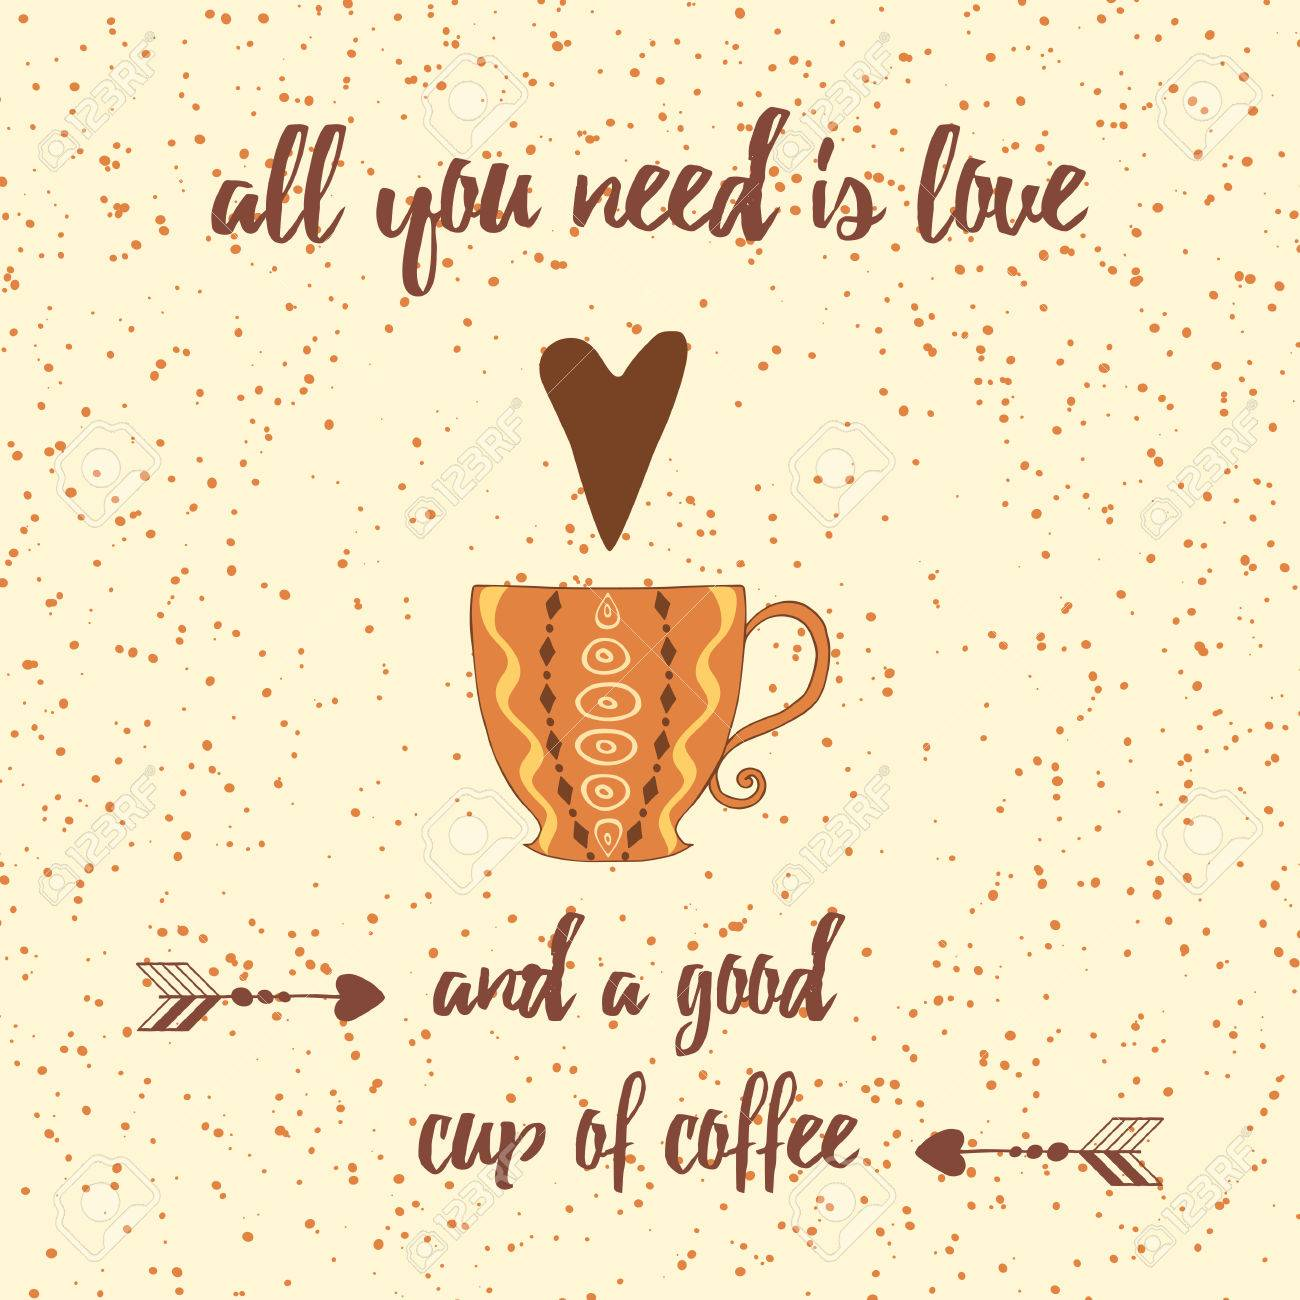 Cups Of Coffee Heart Positive Sayings And Quote Allyou Nee Royalty Free Cliparts Vectors And Stock Illustration Image 66656327